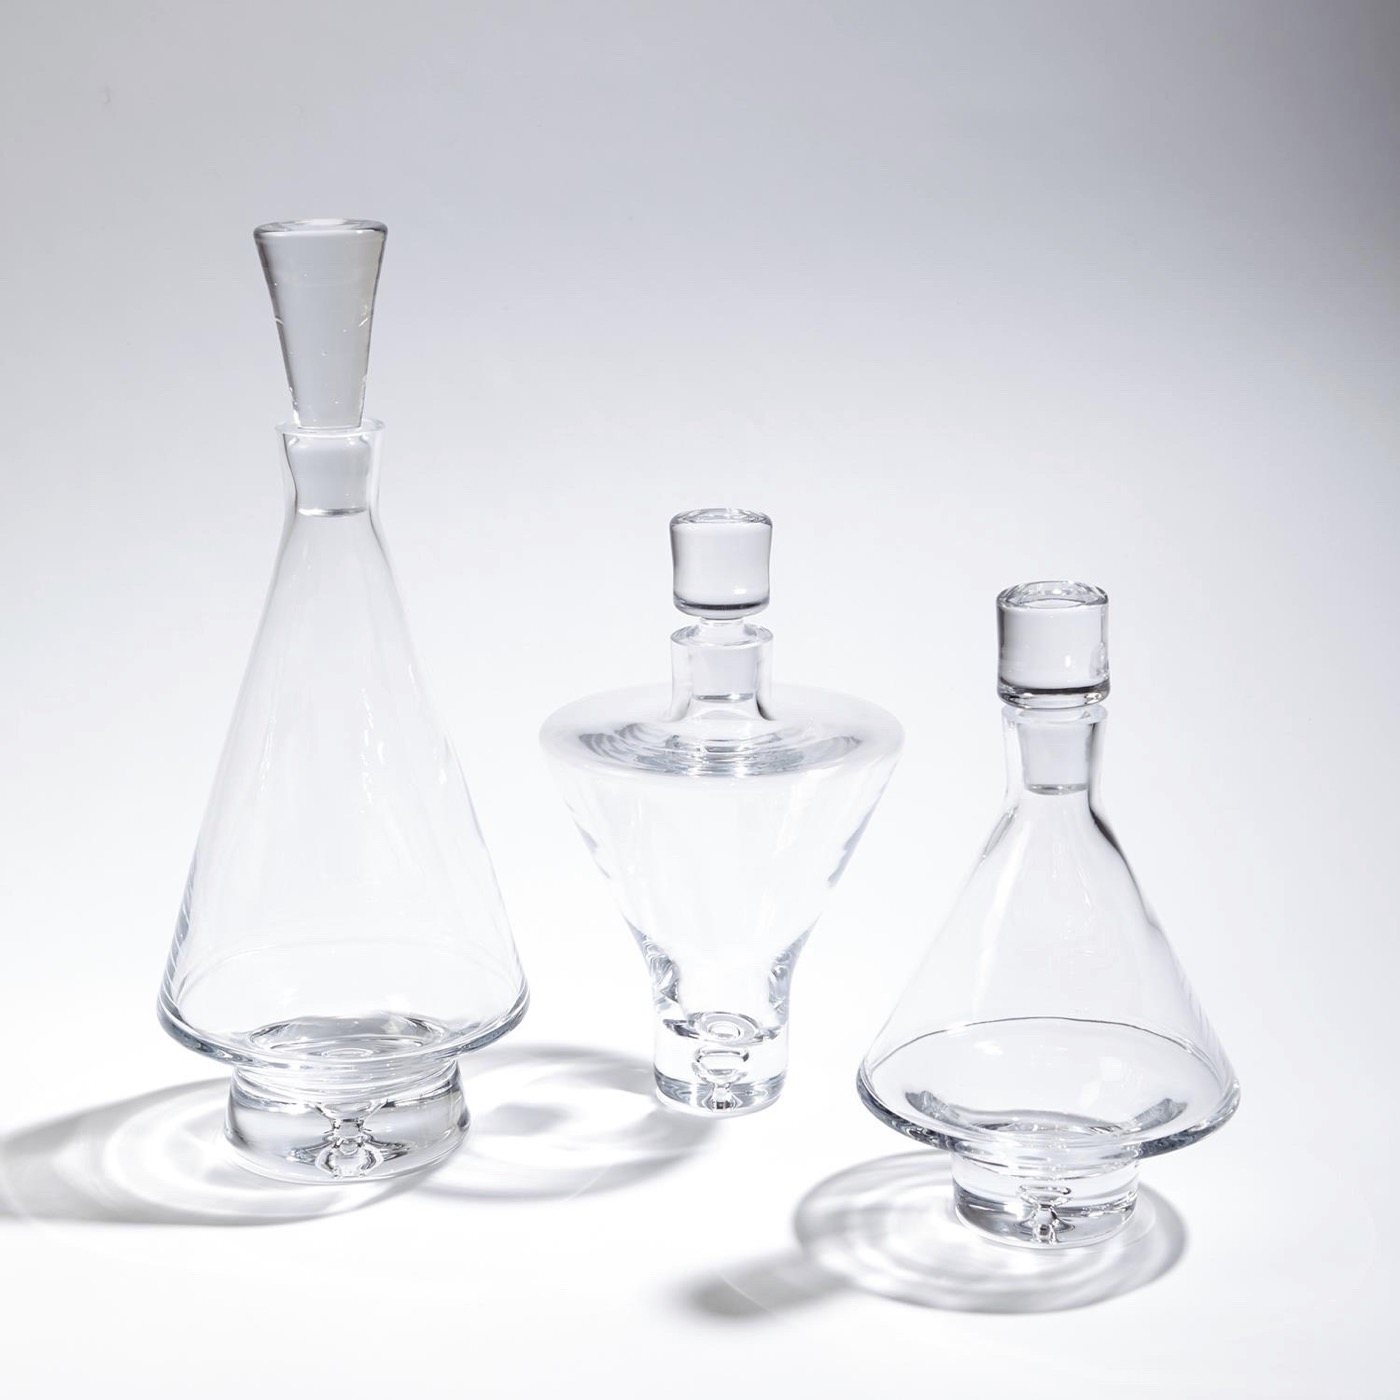 Uptown Decanters